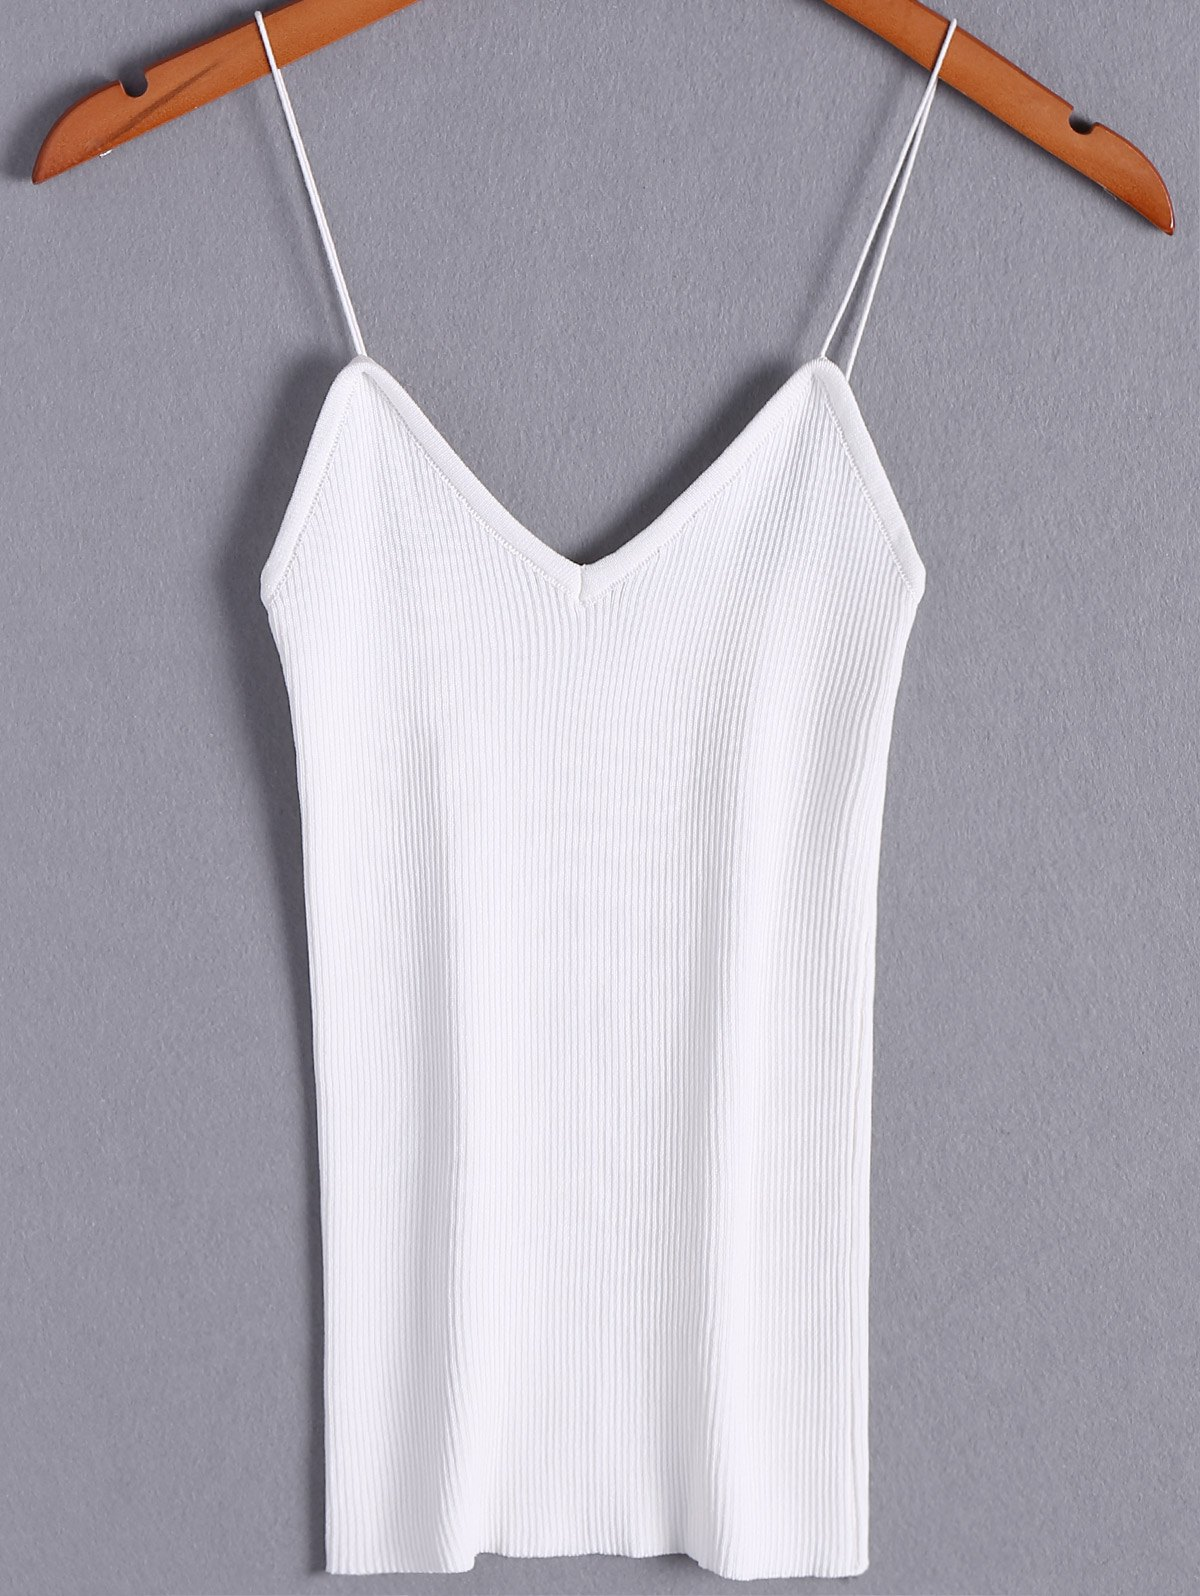 Simple Women's V-Neck Spaghetti Strap Tank Tops - WHITE ONE SIZE(FIT SIZE XS TO M)